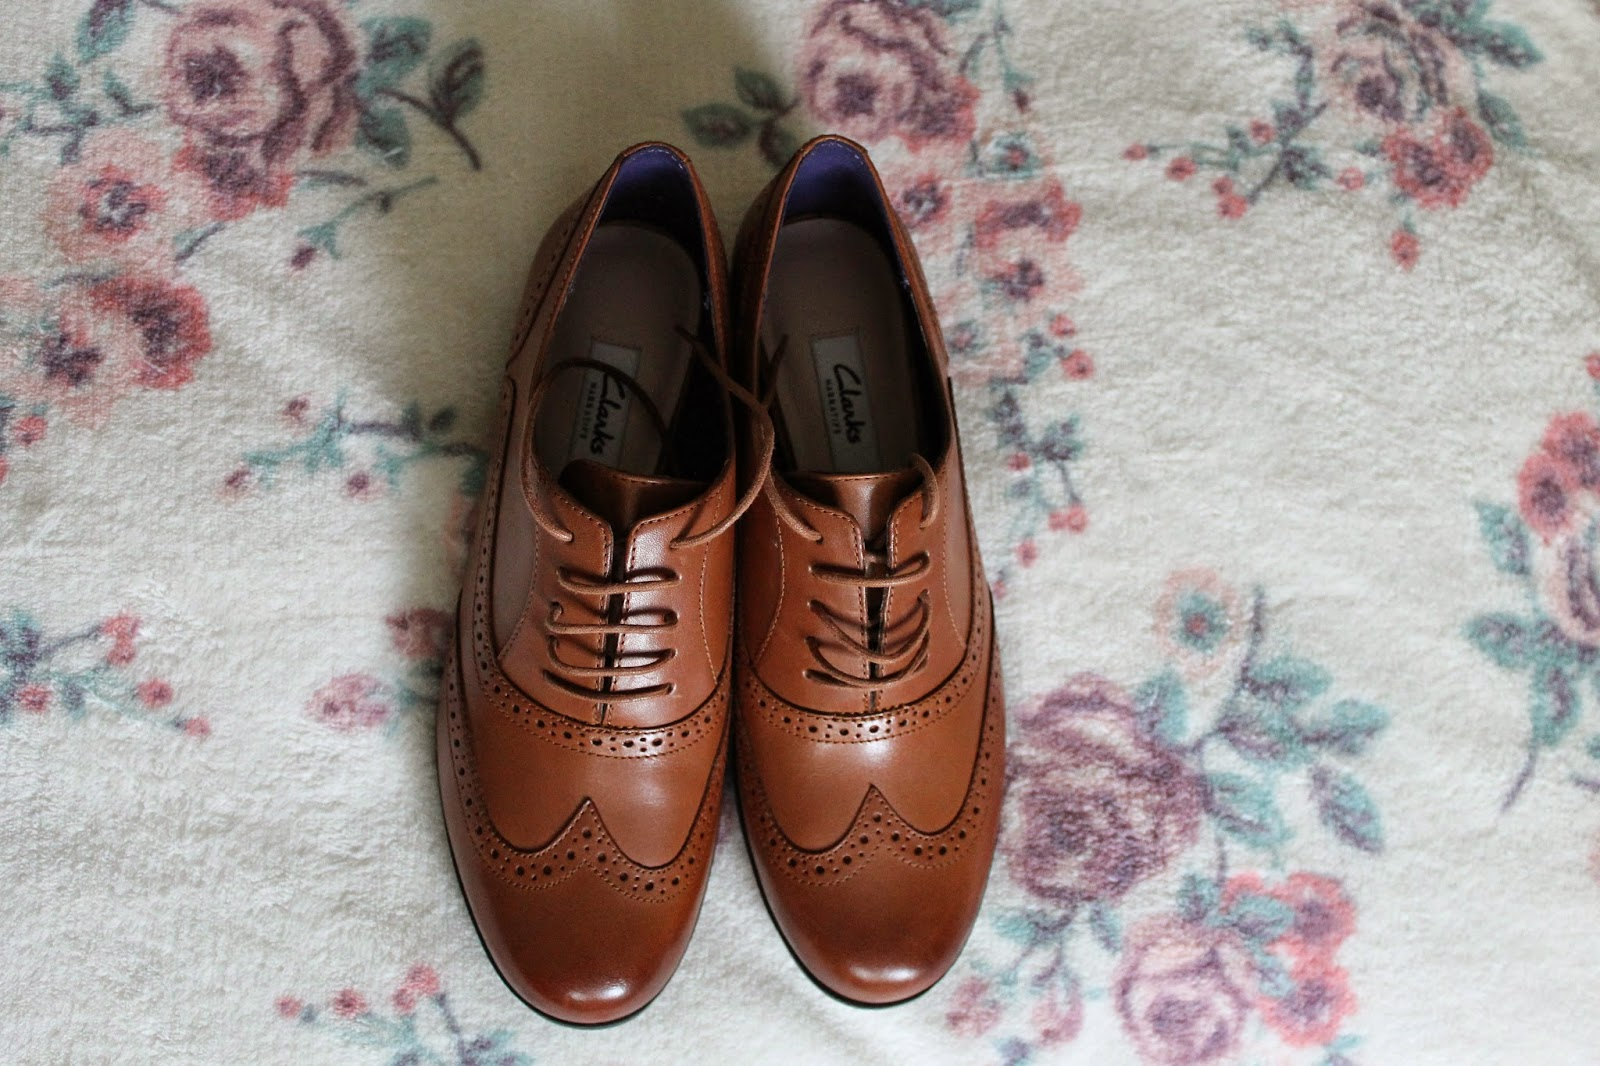 Clarks Brown Leather Brogues